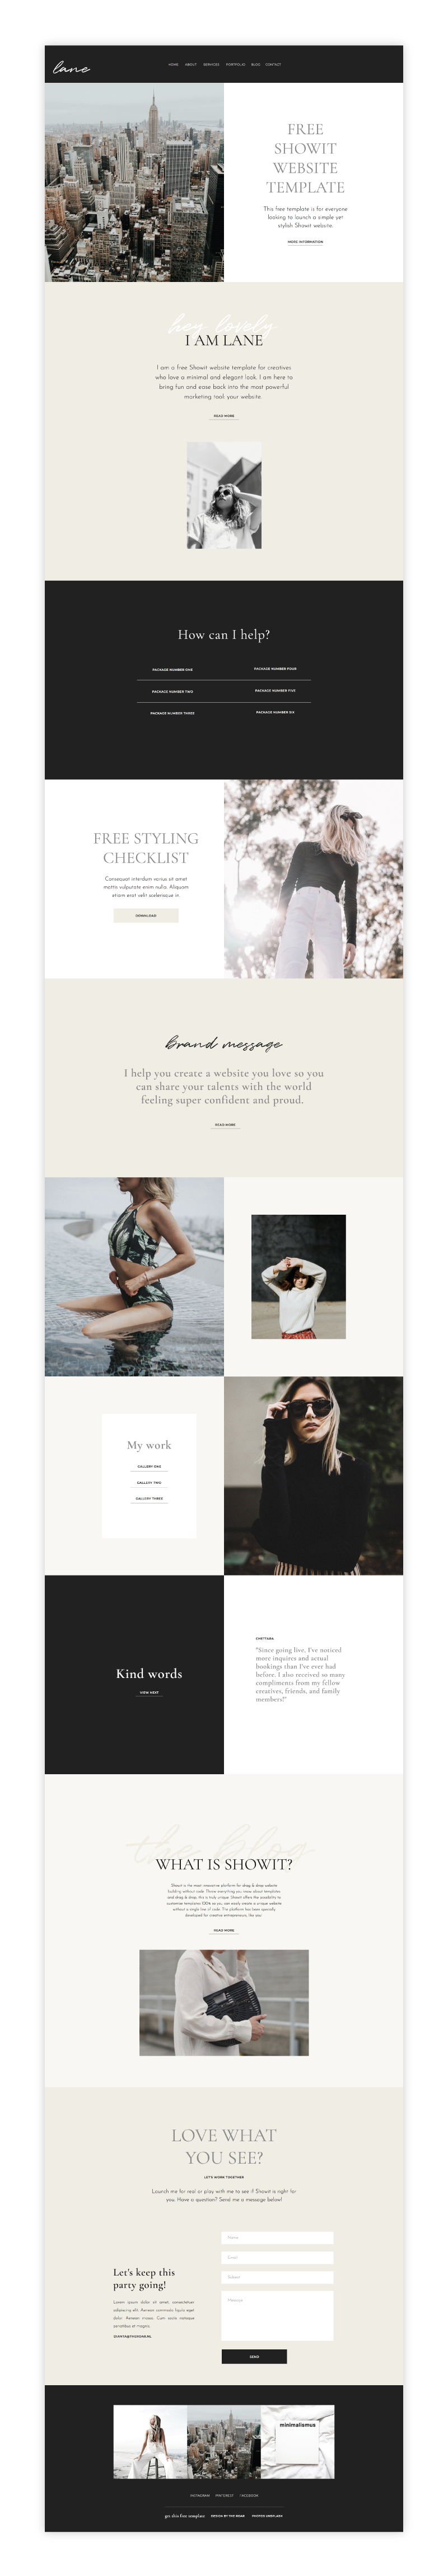 The-Roar-Showit-Web-Design-Free-Website-Template-Lane-Shop-White